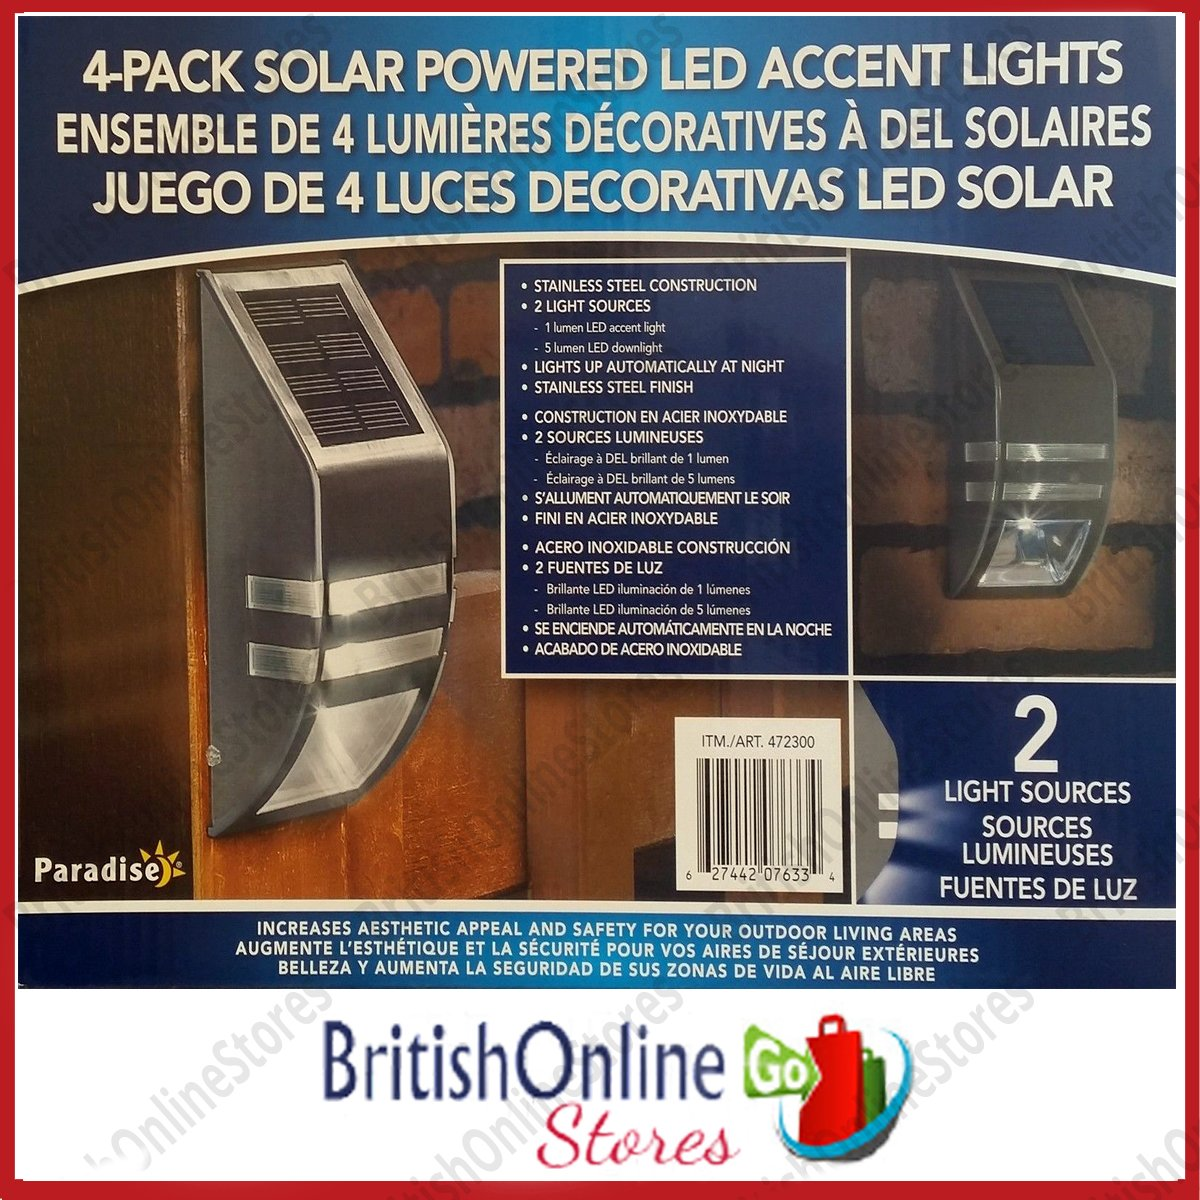 Paradise 4 Pack Solar Powered LED Accent/Security Light